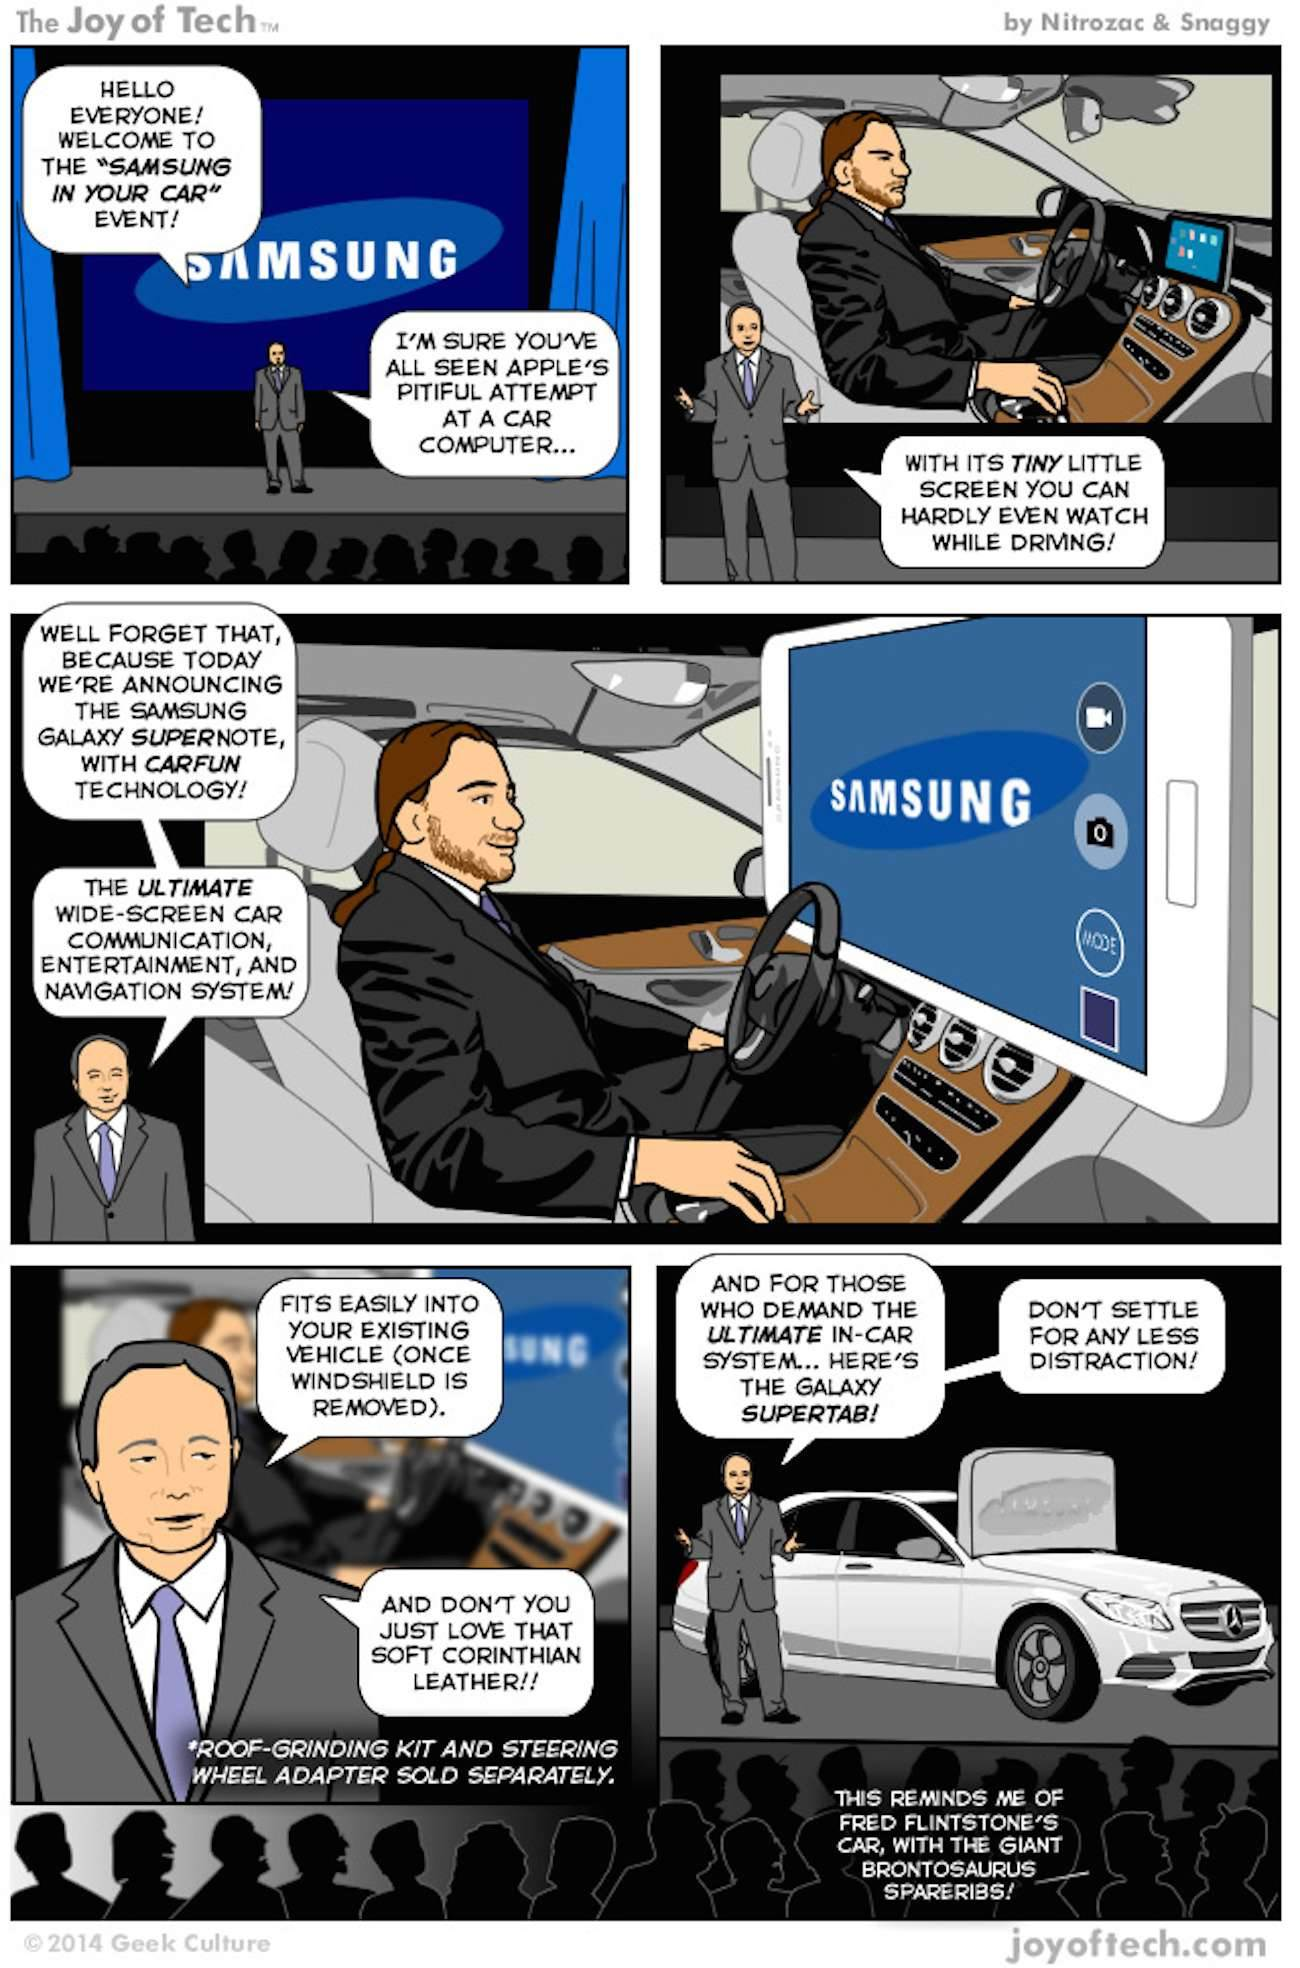 Samsung-in-the-Car